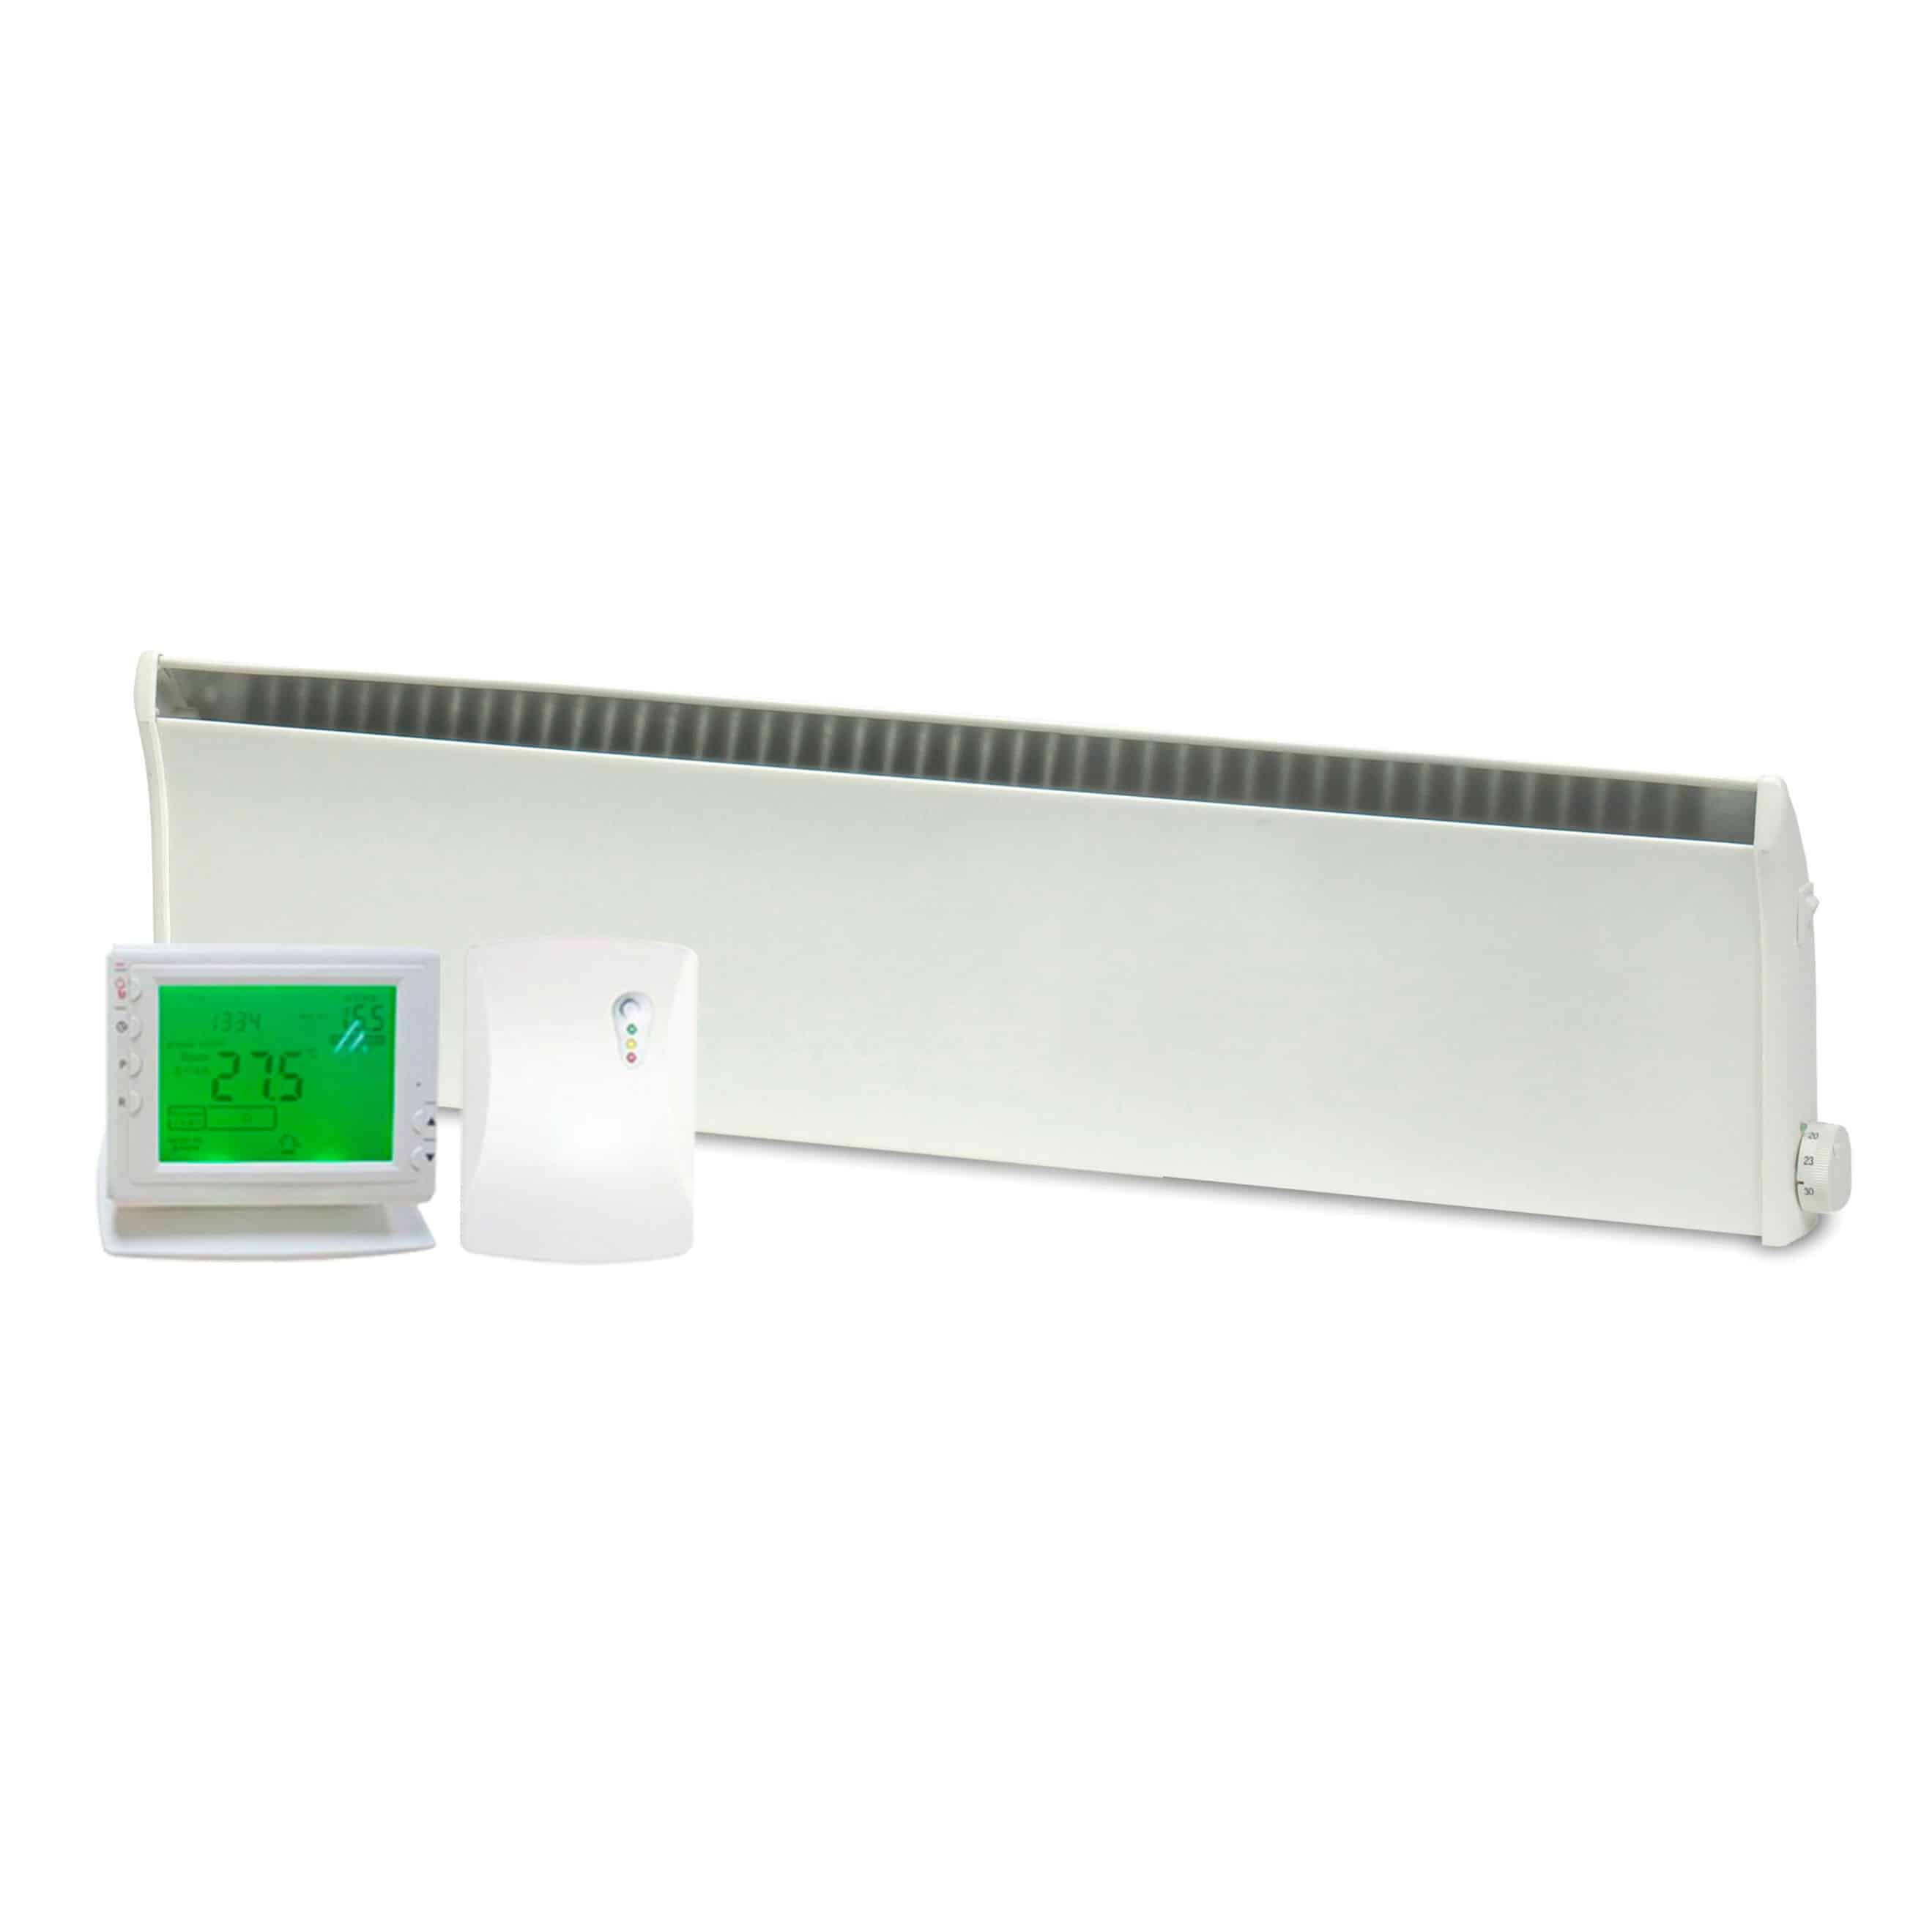 electric panel heater with timer and thermostat  | www.ebay.co.uk